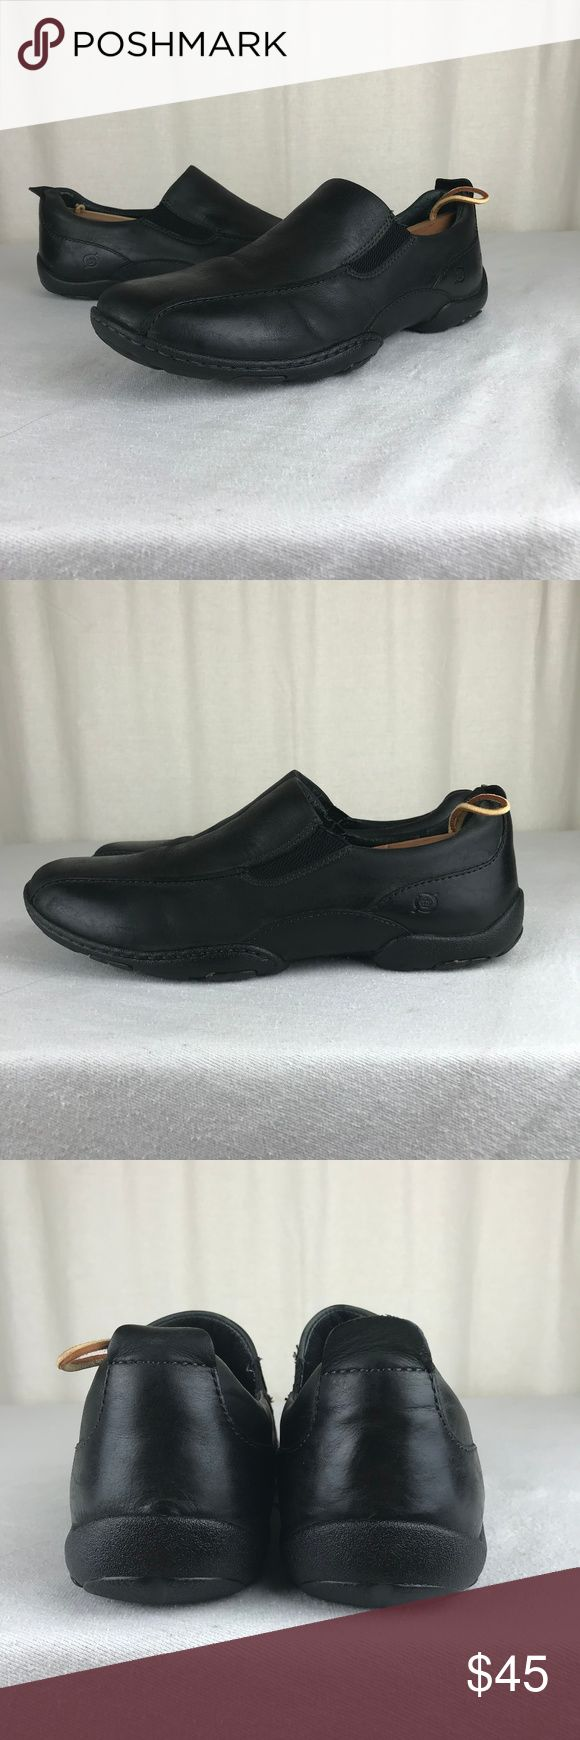 Born Mens 11 45 Black Alpert Loafer Slip On Shoes Product Description  A versatile slip-on casual with gored construction for an easy, flexible fit.  Full-grain or burnished full-grain leather  Leather lining  Dryz® moisture-managing footbed  Rubber outsole  Steel shank  Opanka hand-crafted construction Born Shoes Loafers & Slip-Ons